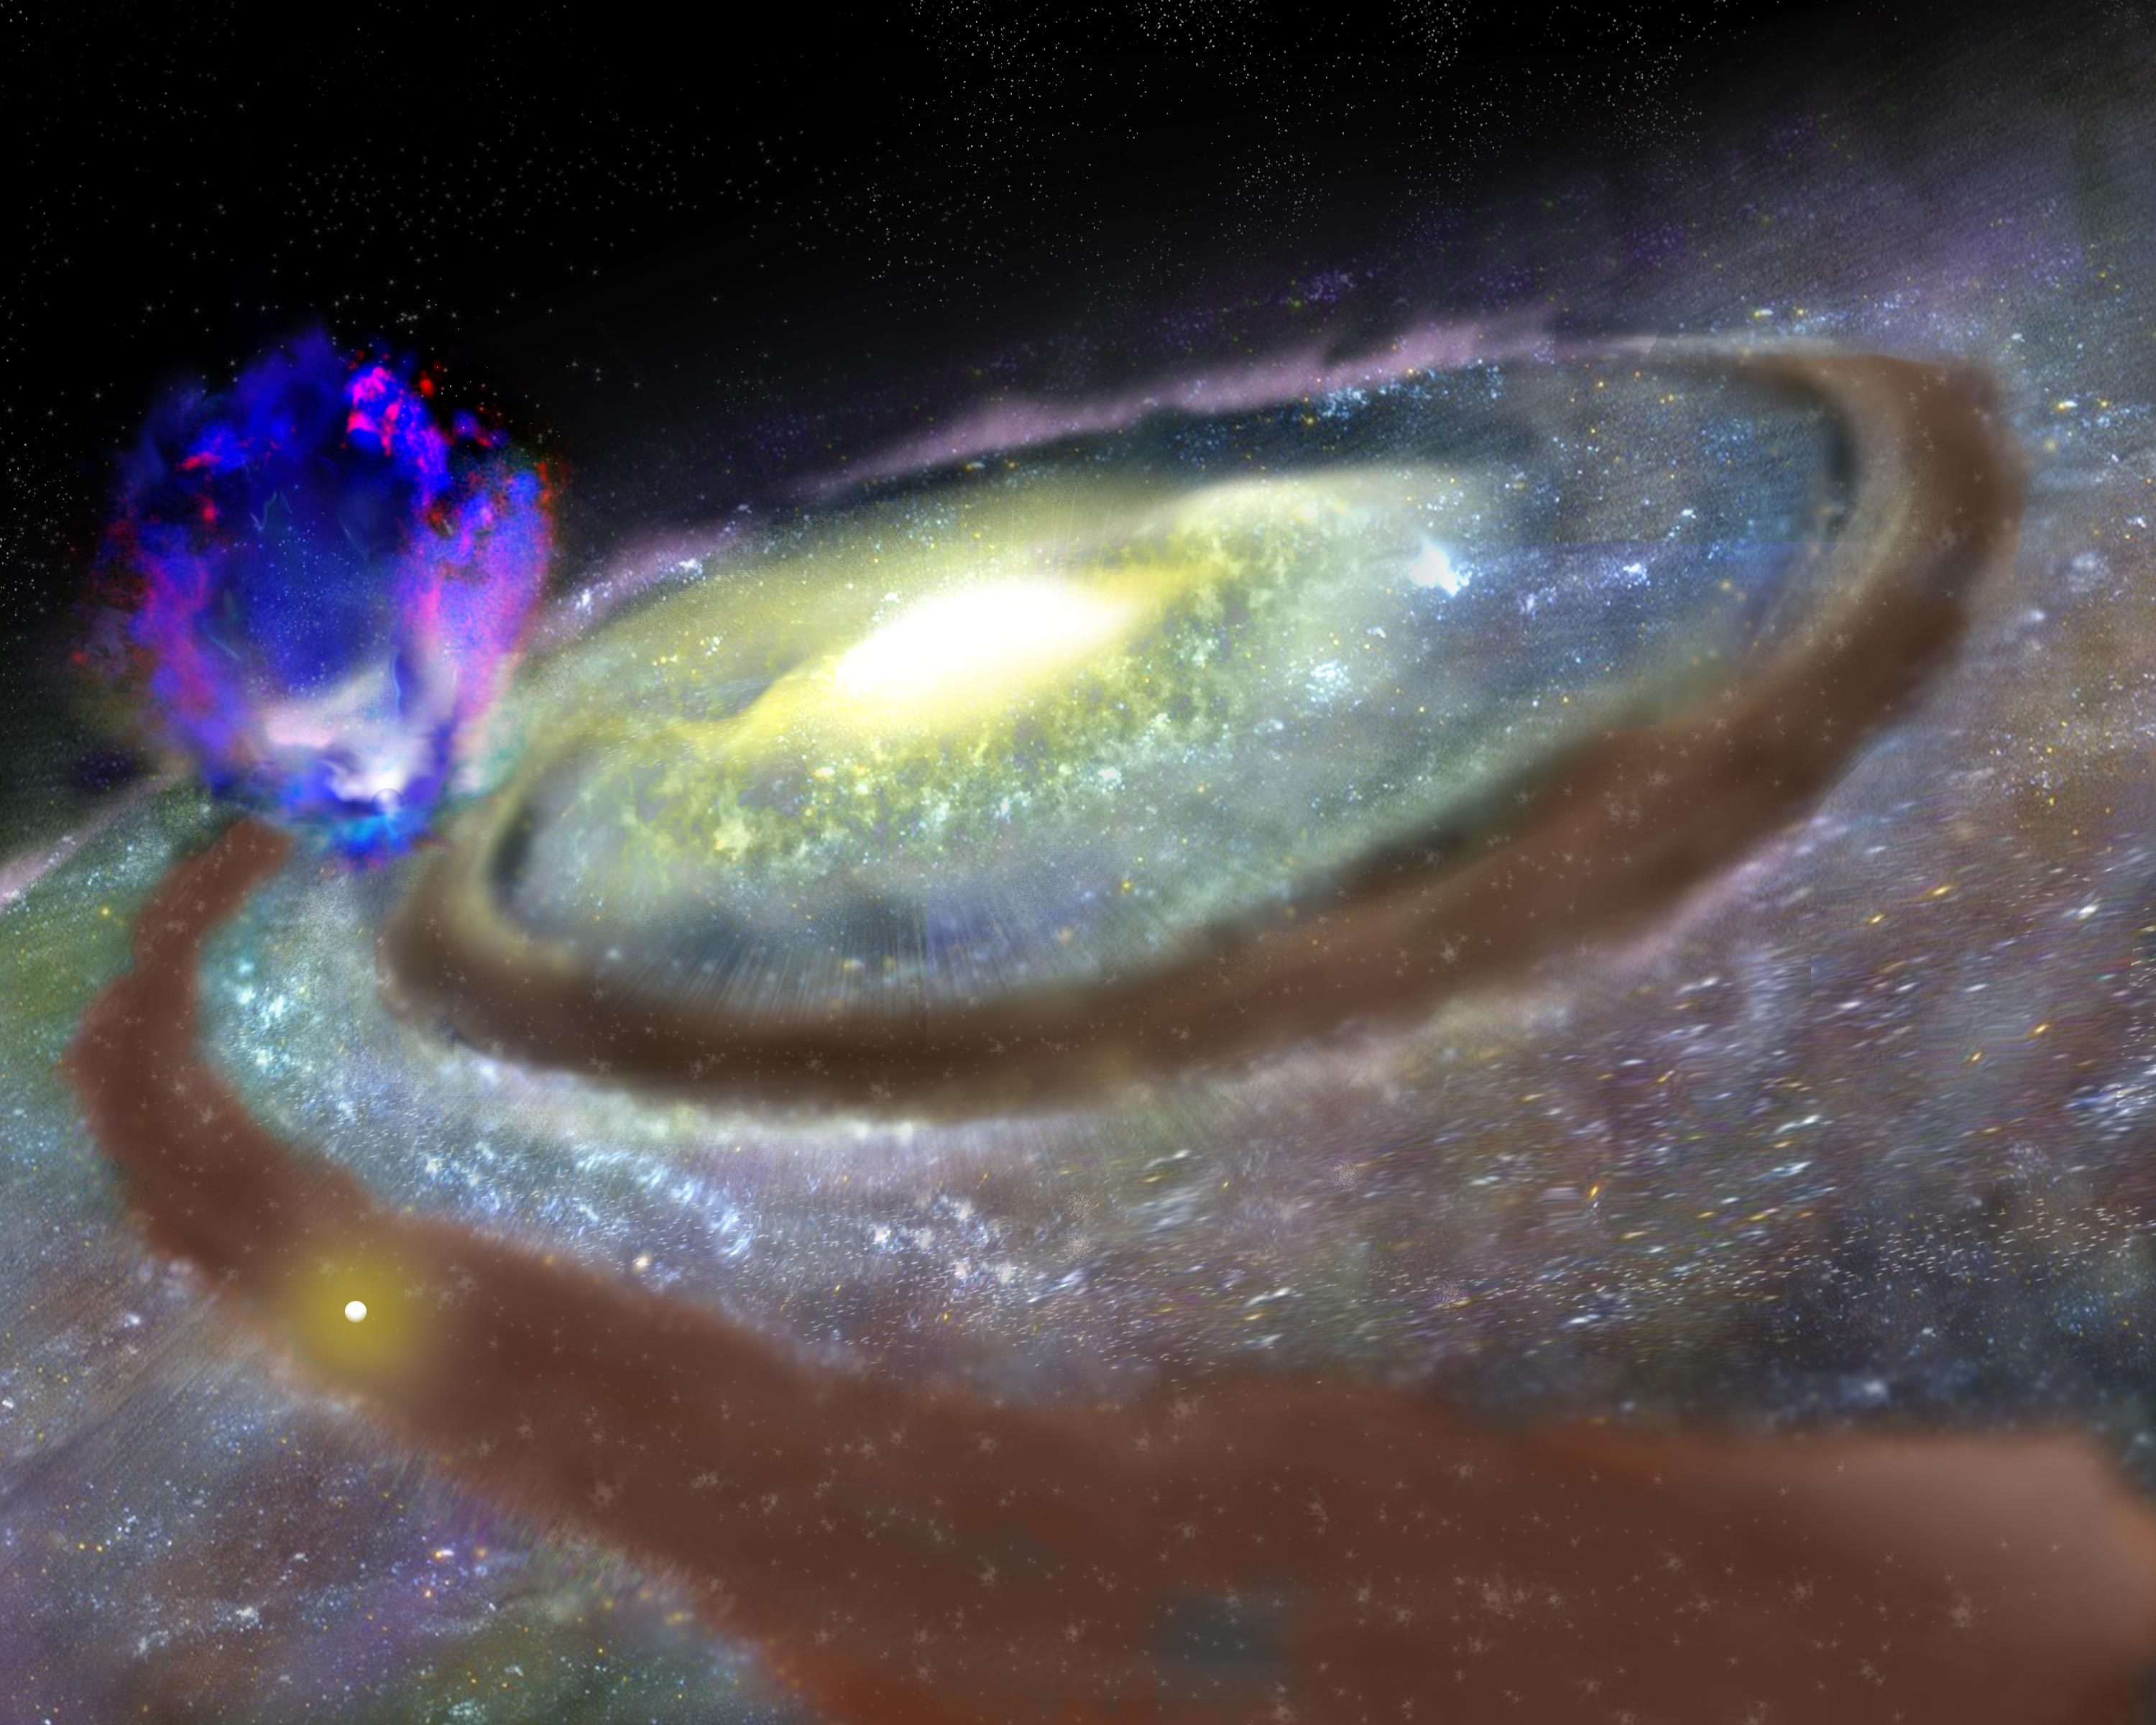 Artist's impression of Milky Way galaxy and Superbubble